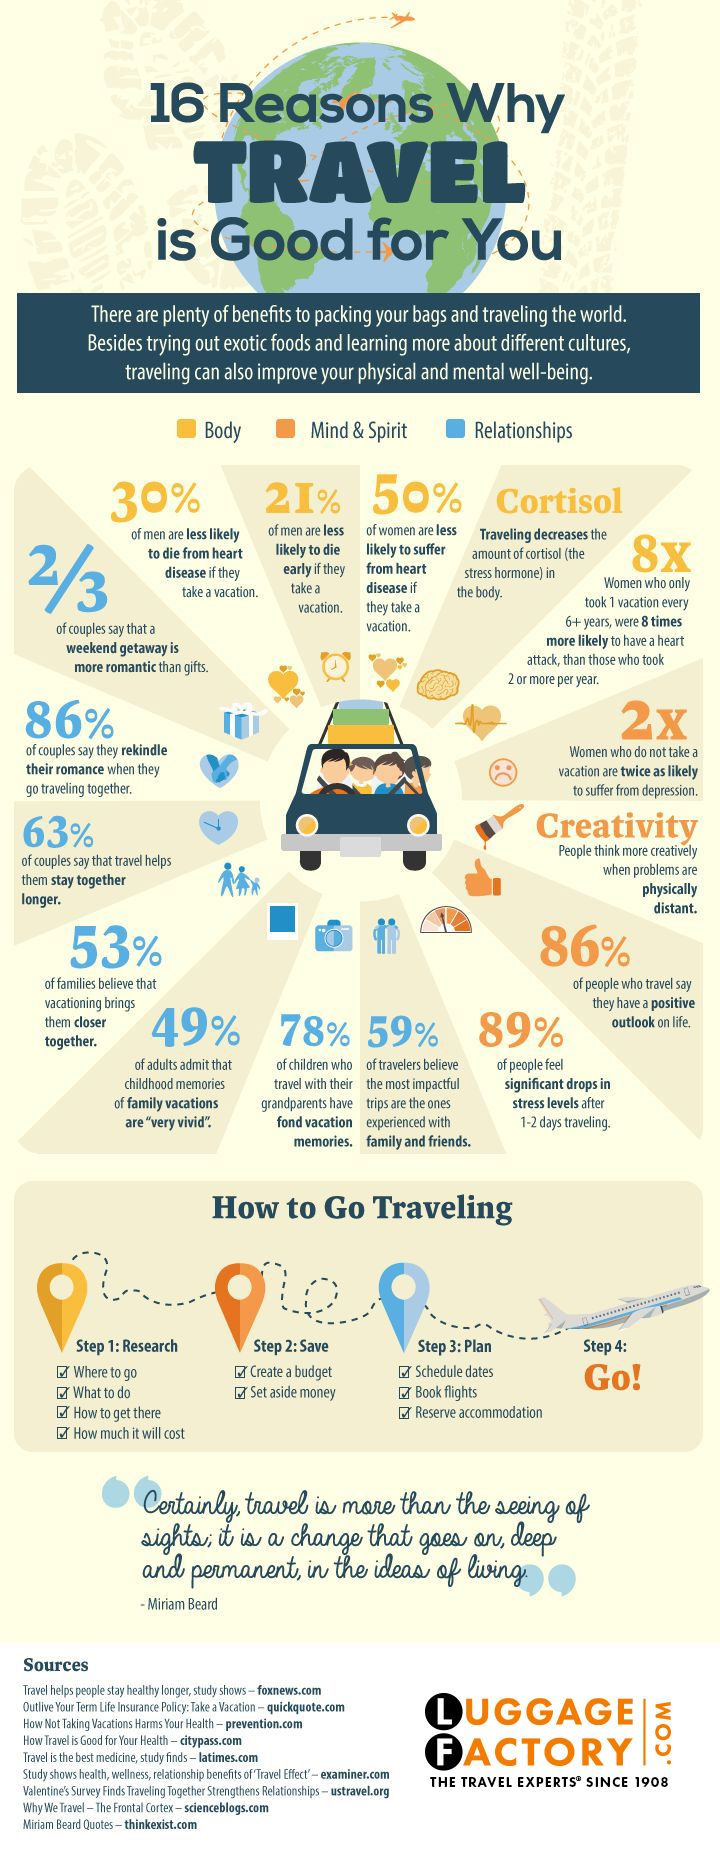 Reasons why Traveling is good for you by the travel experts http://www.luggagefactory.com